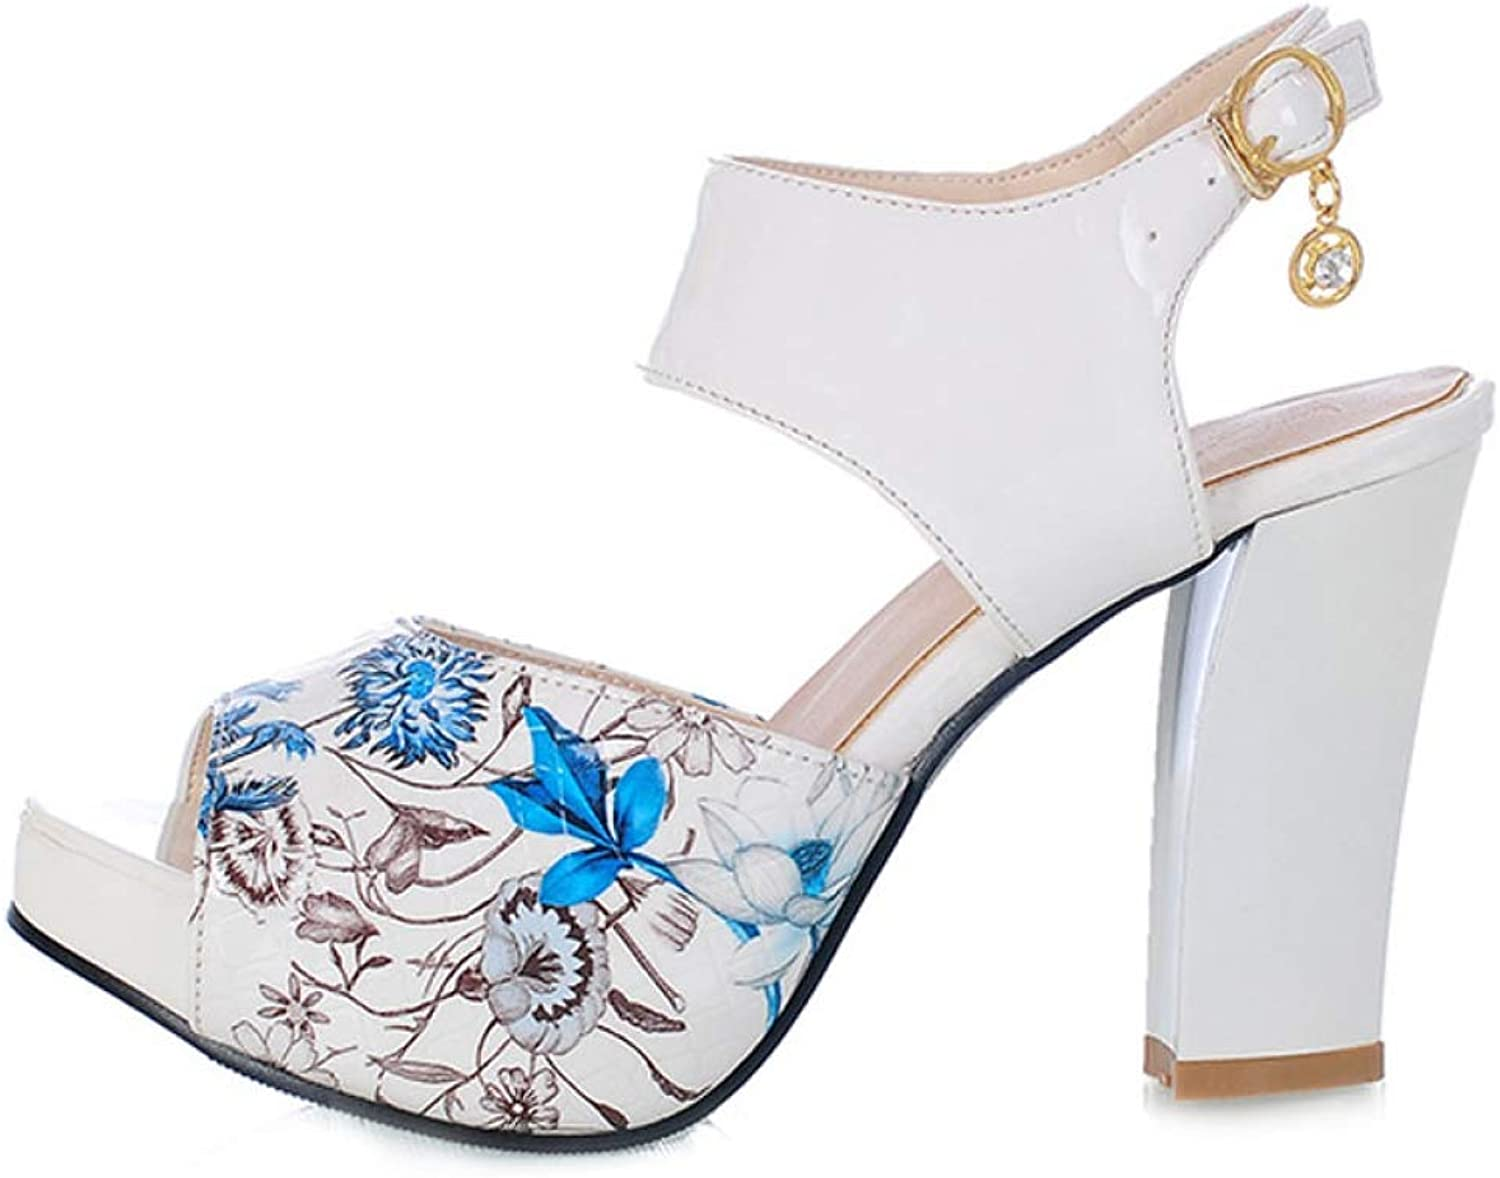 T-JULY Sandal for Women Fish Mouth Buckle Strap Square Heel Ankle Strap Summer Mix color Ladies Fashion Sexy Wedding Party shoes